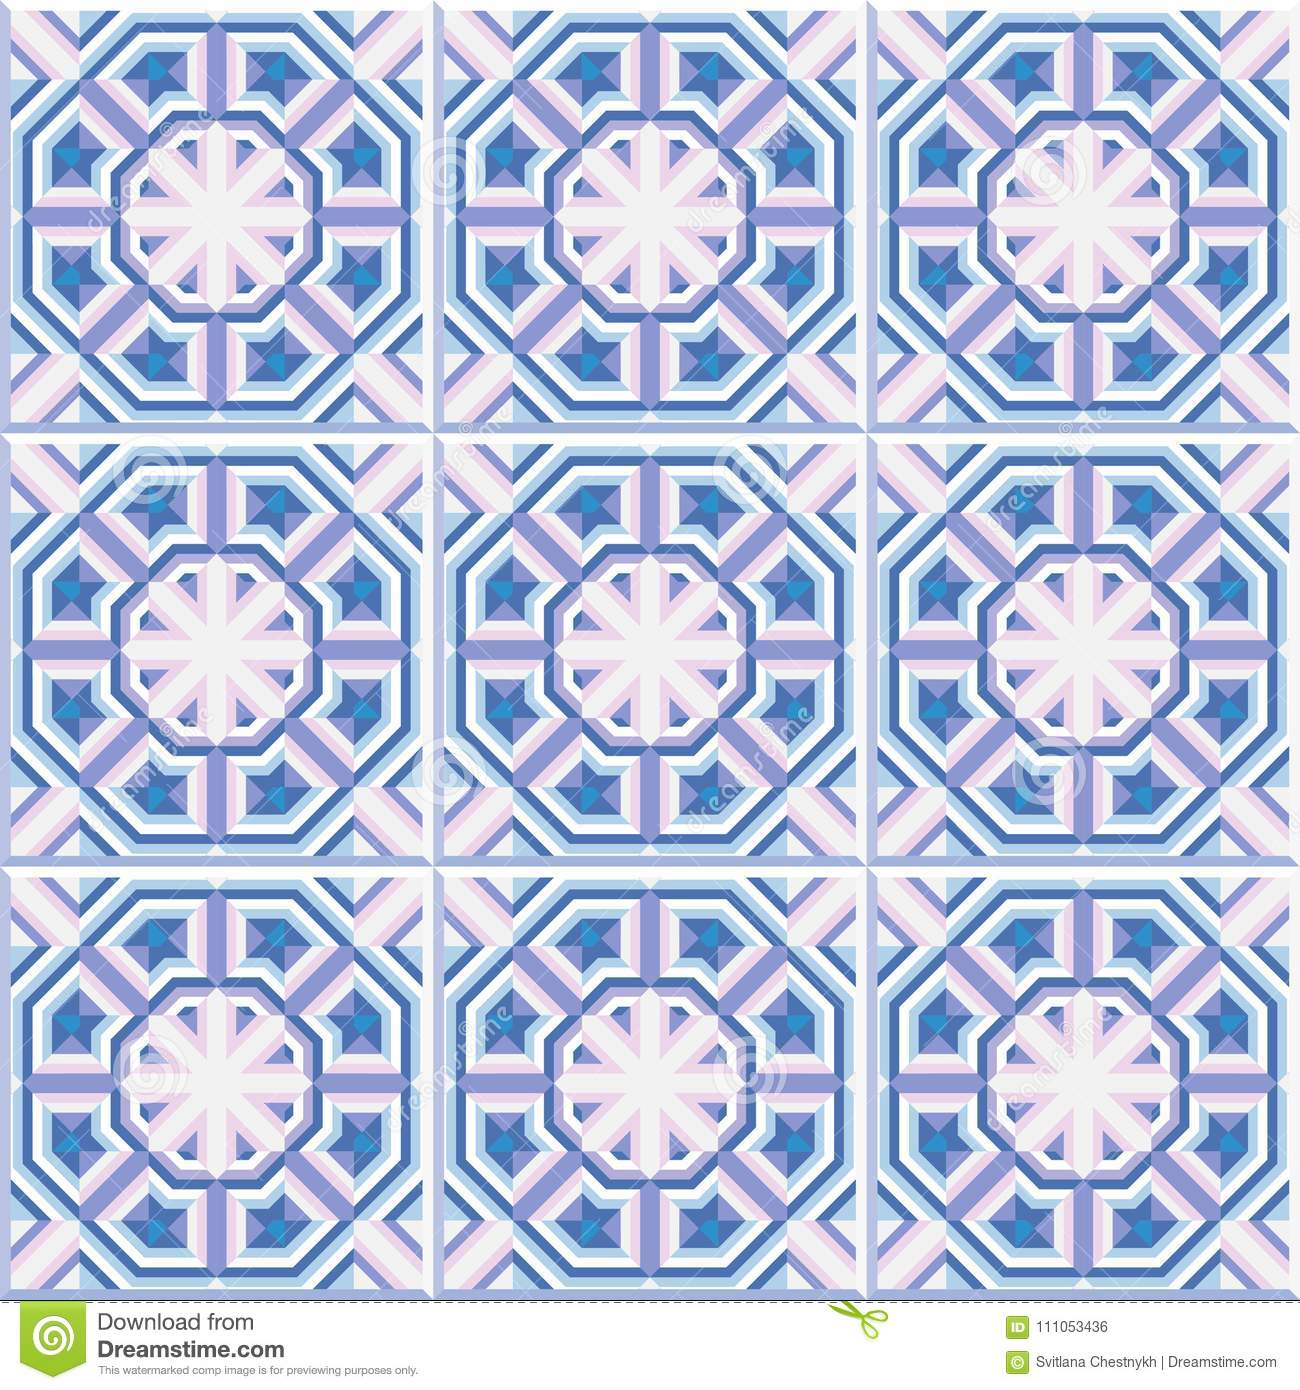 Portuguese Floor Tiles Design, Seamless Pattern, Abstract Geometric ...